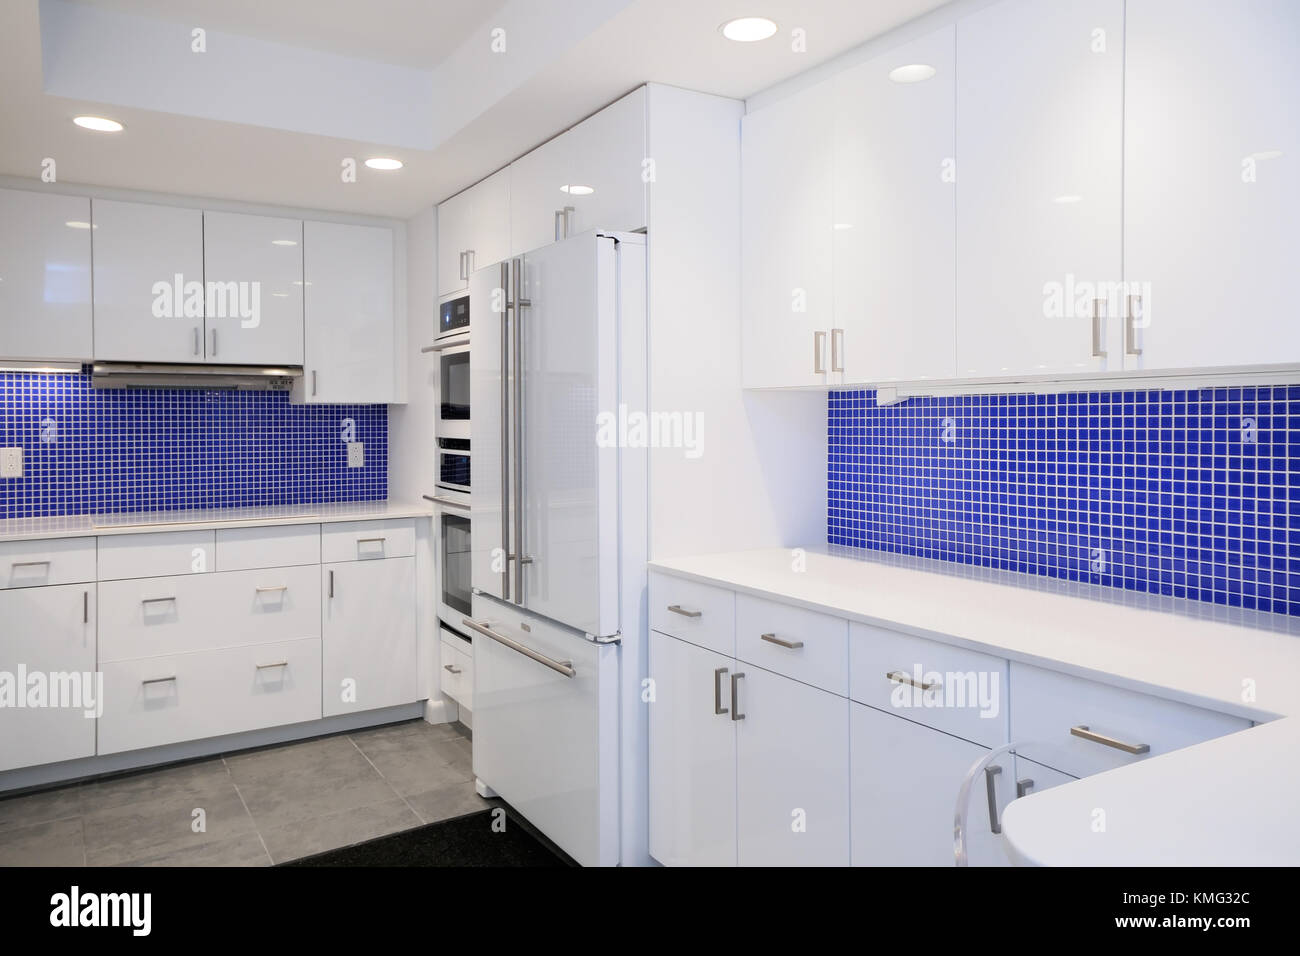 Kitchen Interior Remodel With Blue Tile Walls And White